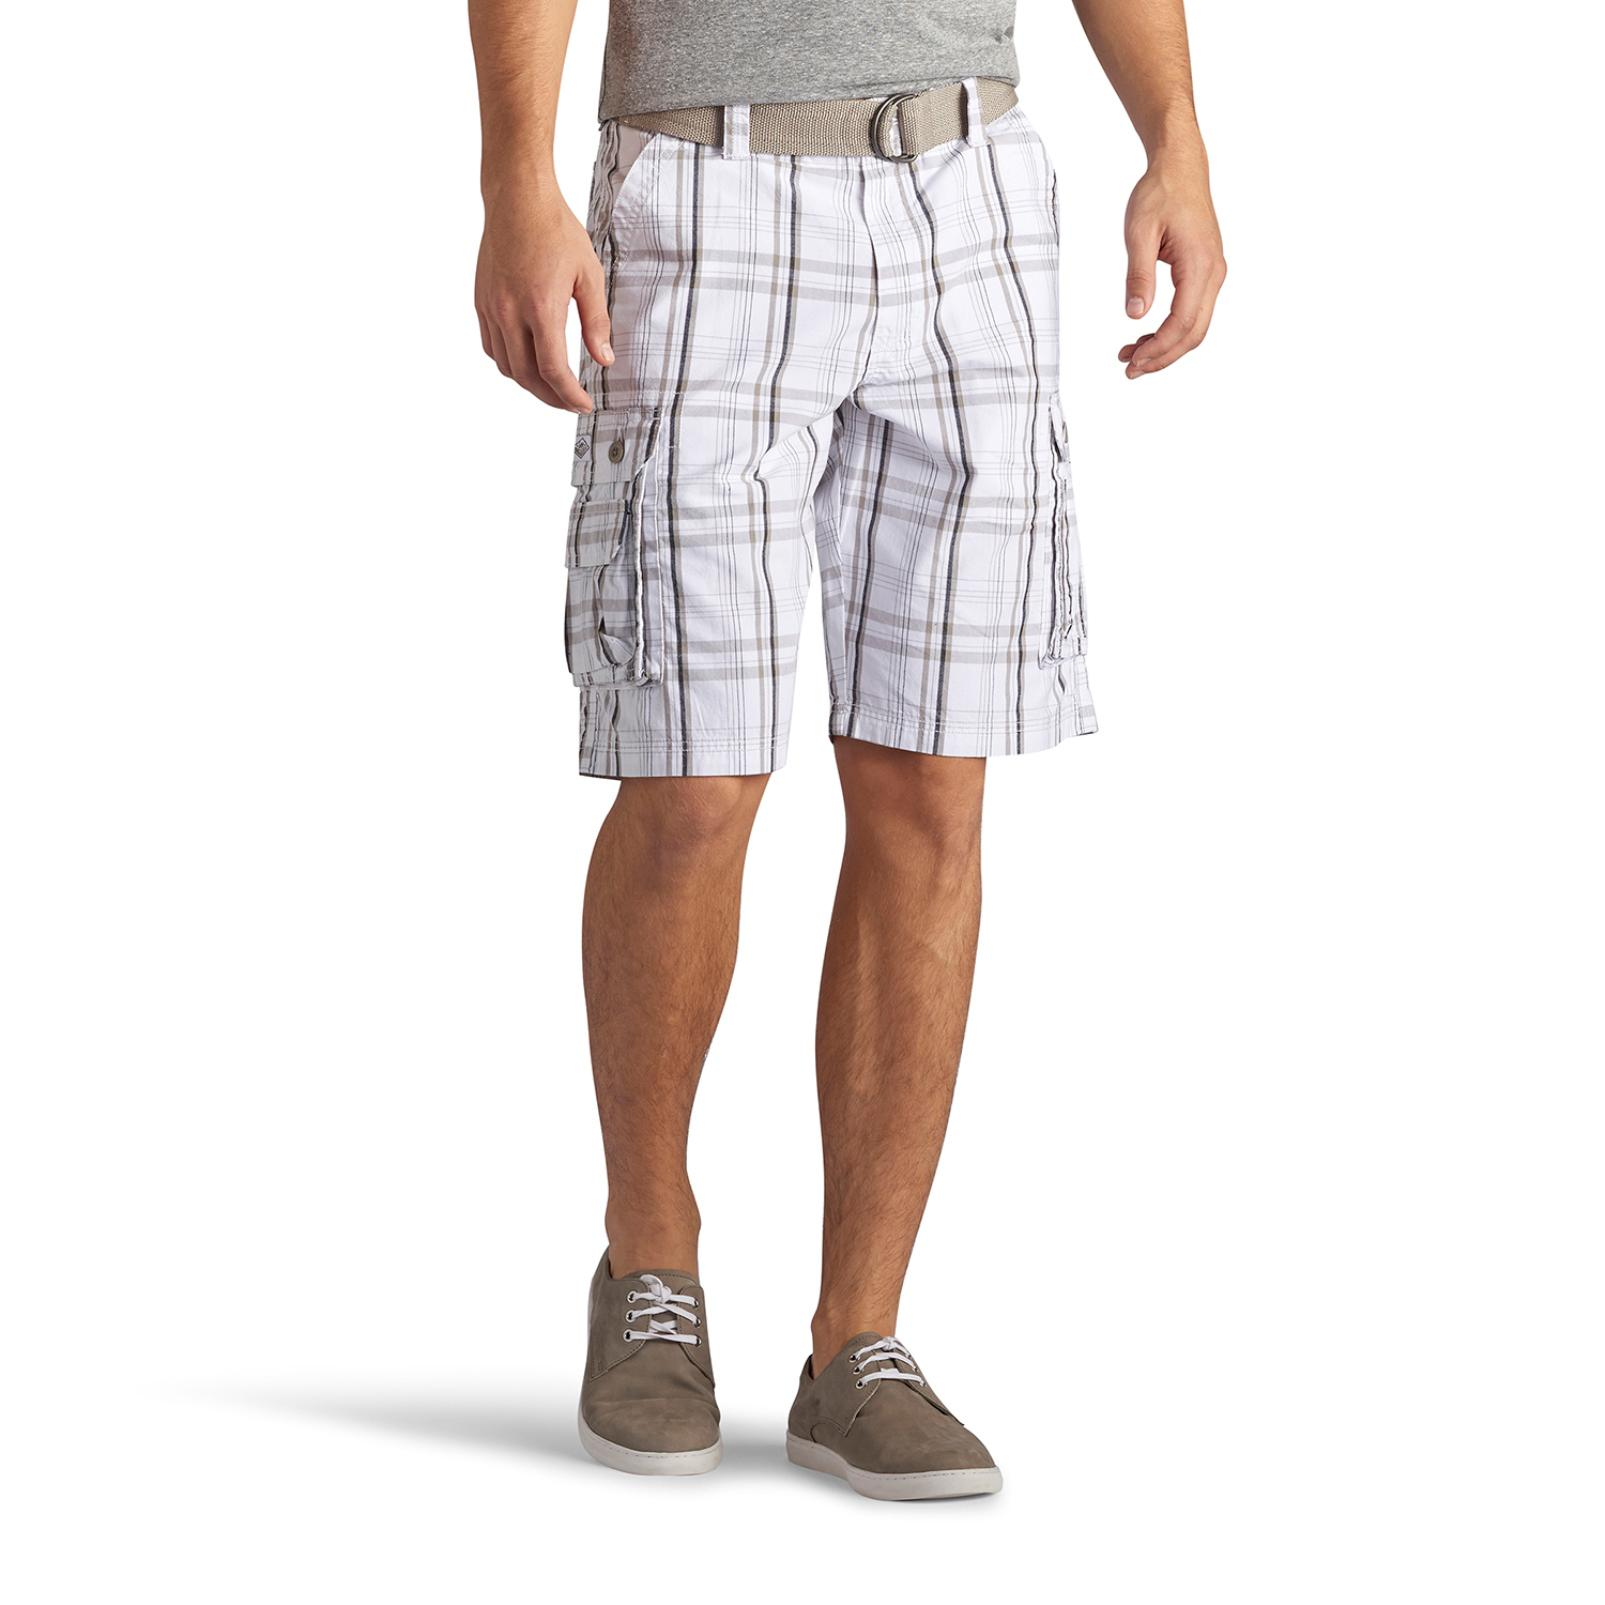 LEE Mens Wyoming Belted Cargo Shorts Plaid